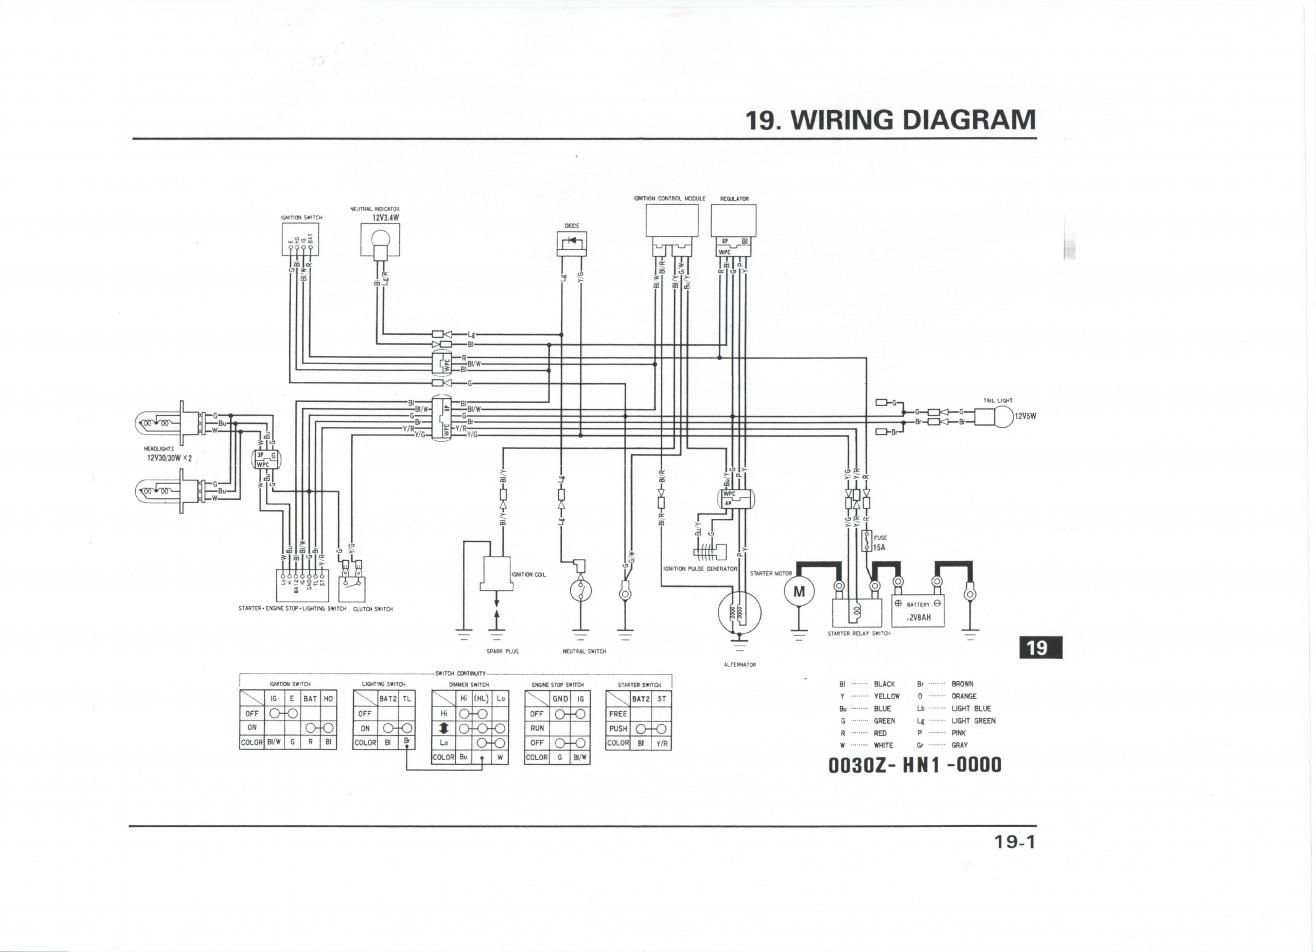 small resolution of 300ex wiring diagram wiring diagram for you crf450r wiring diagram 300ex wiring diagram